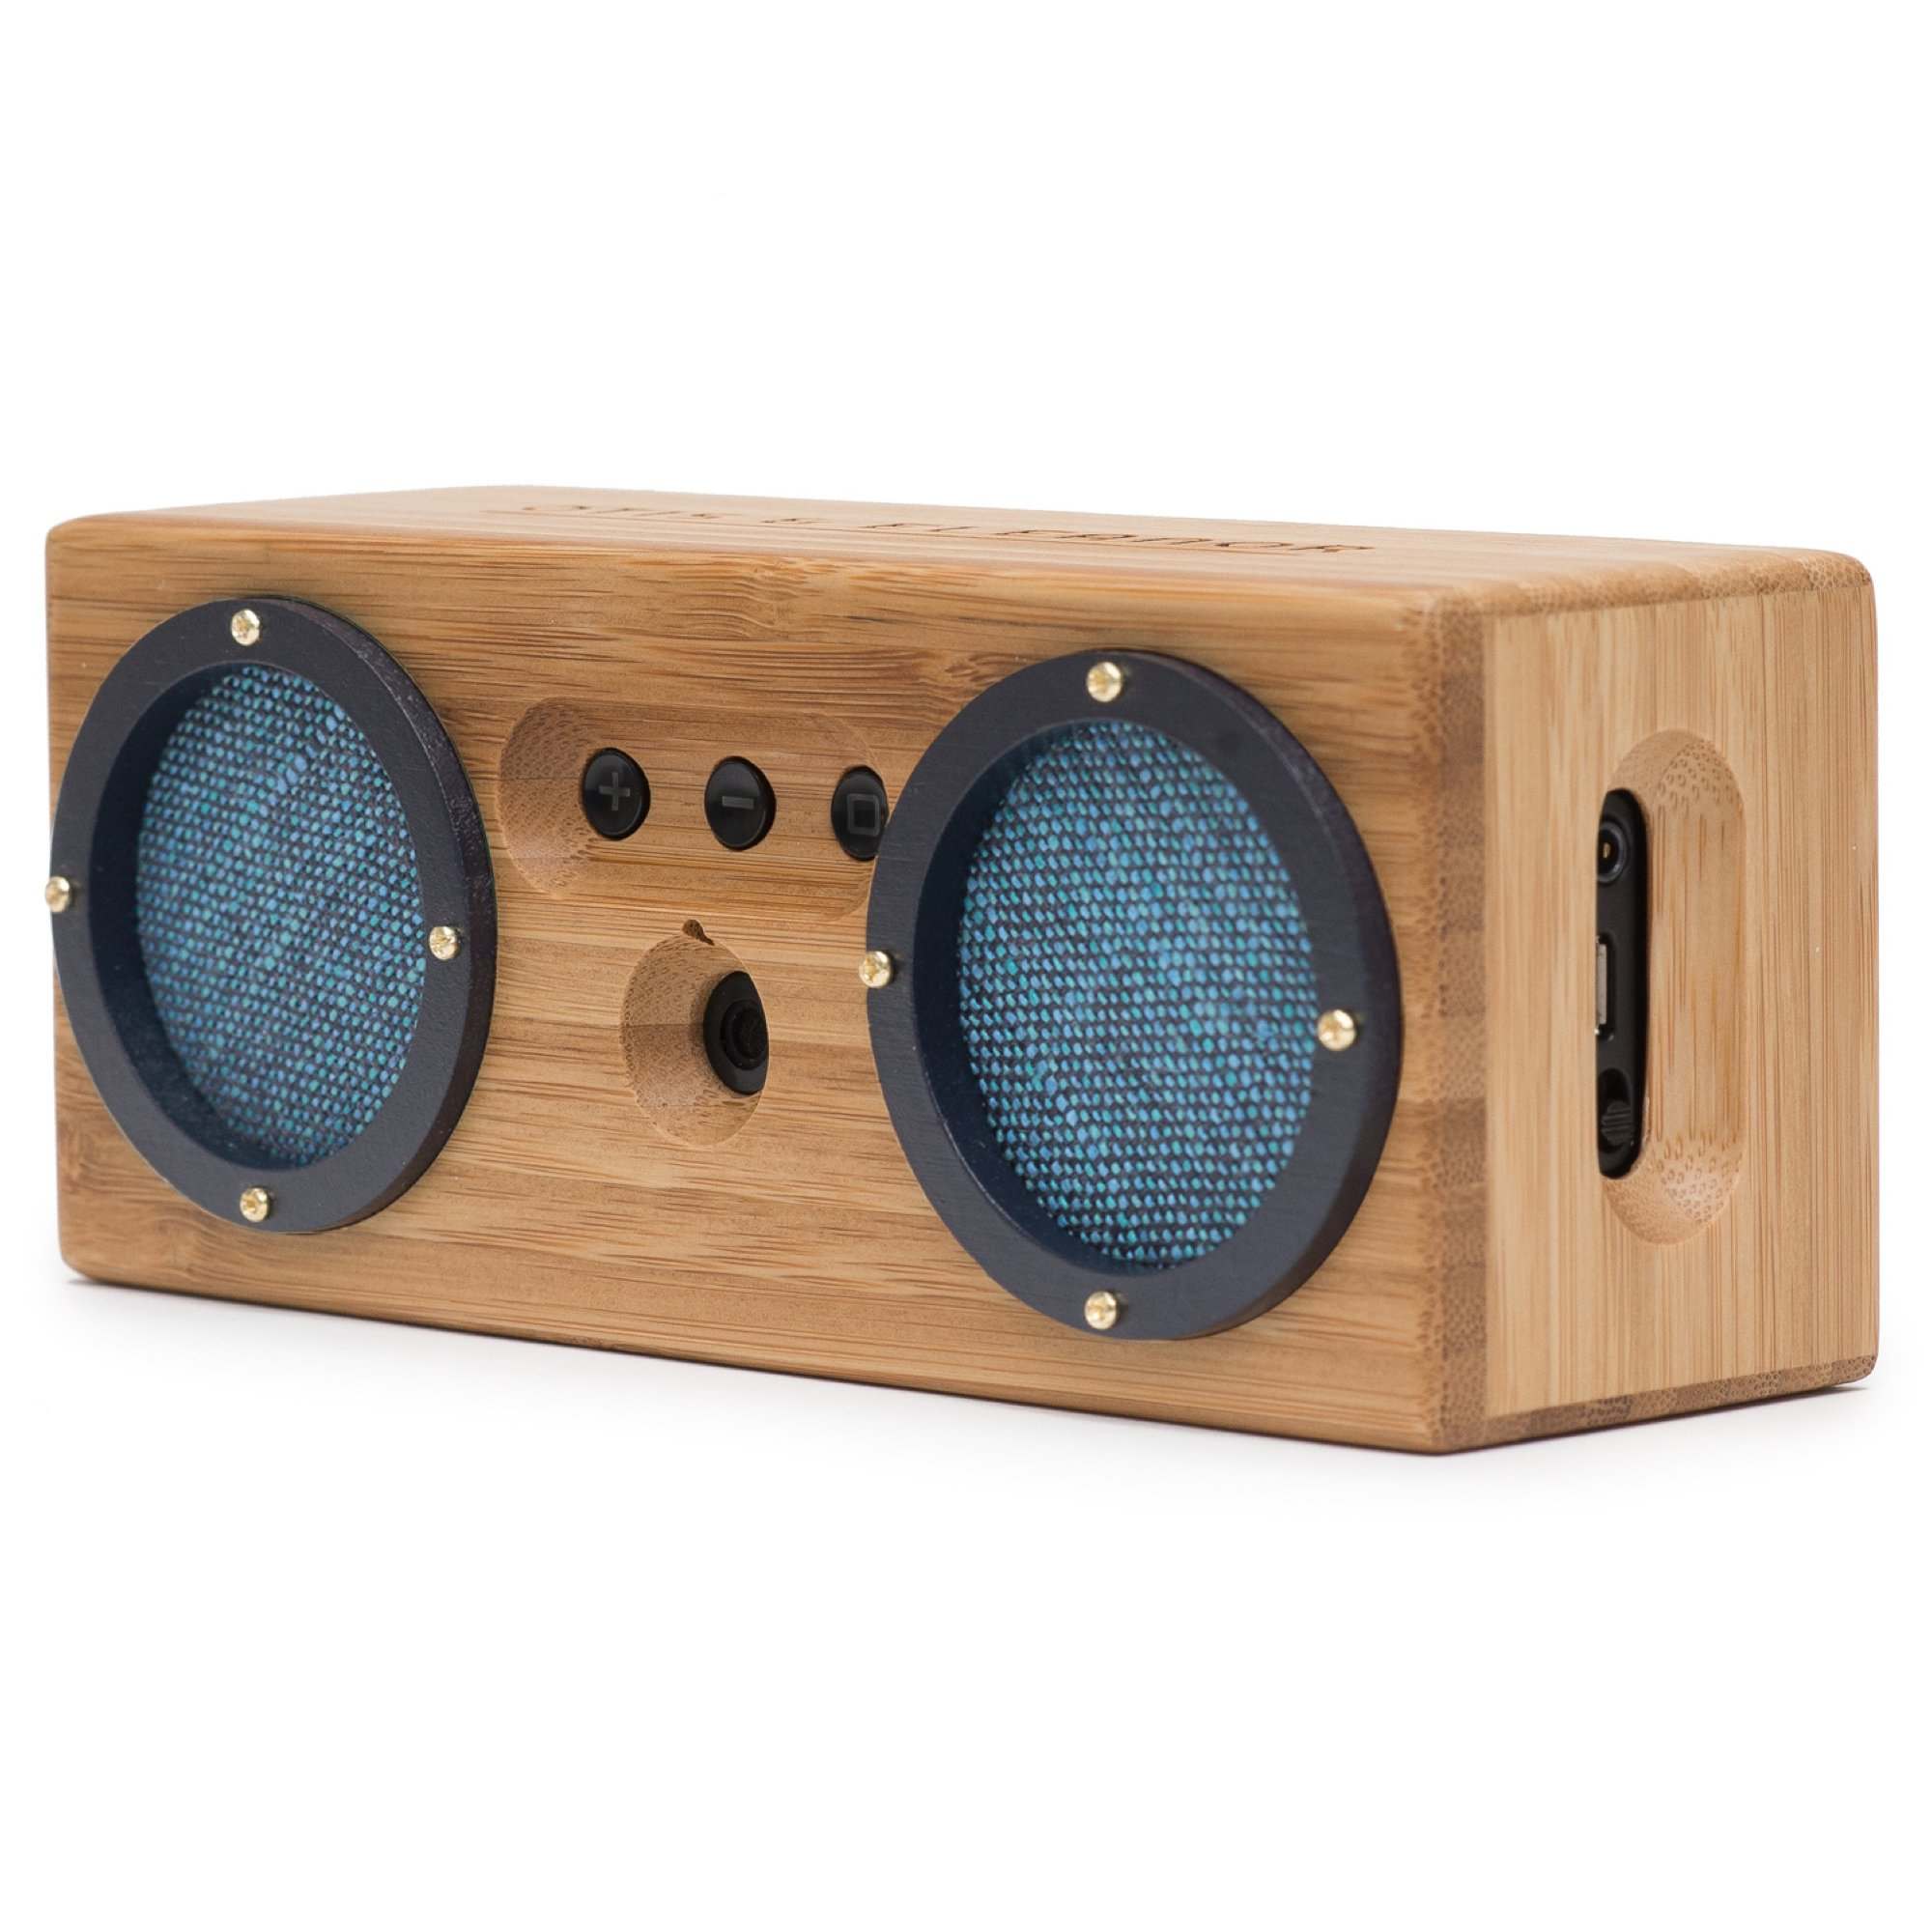 BONGO Wood Bluetooth Speakers | Retro Handcrafted Bamboo | Portable Wireless Speaker for Travel, Home, Shower, Beach, Kitchen, Outdoors | Loud Bass with Dual Passive Woofers | Vintage Blue